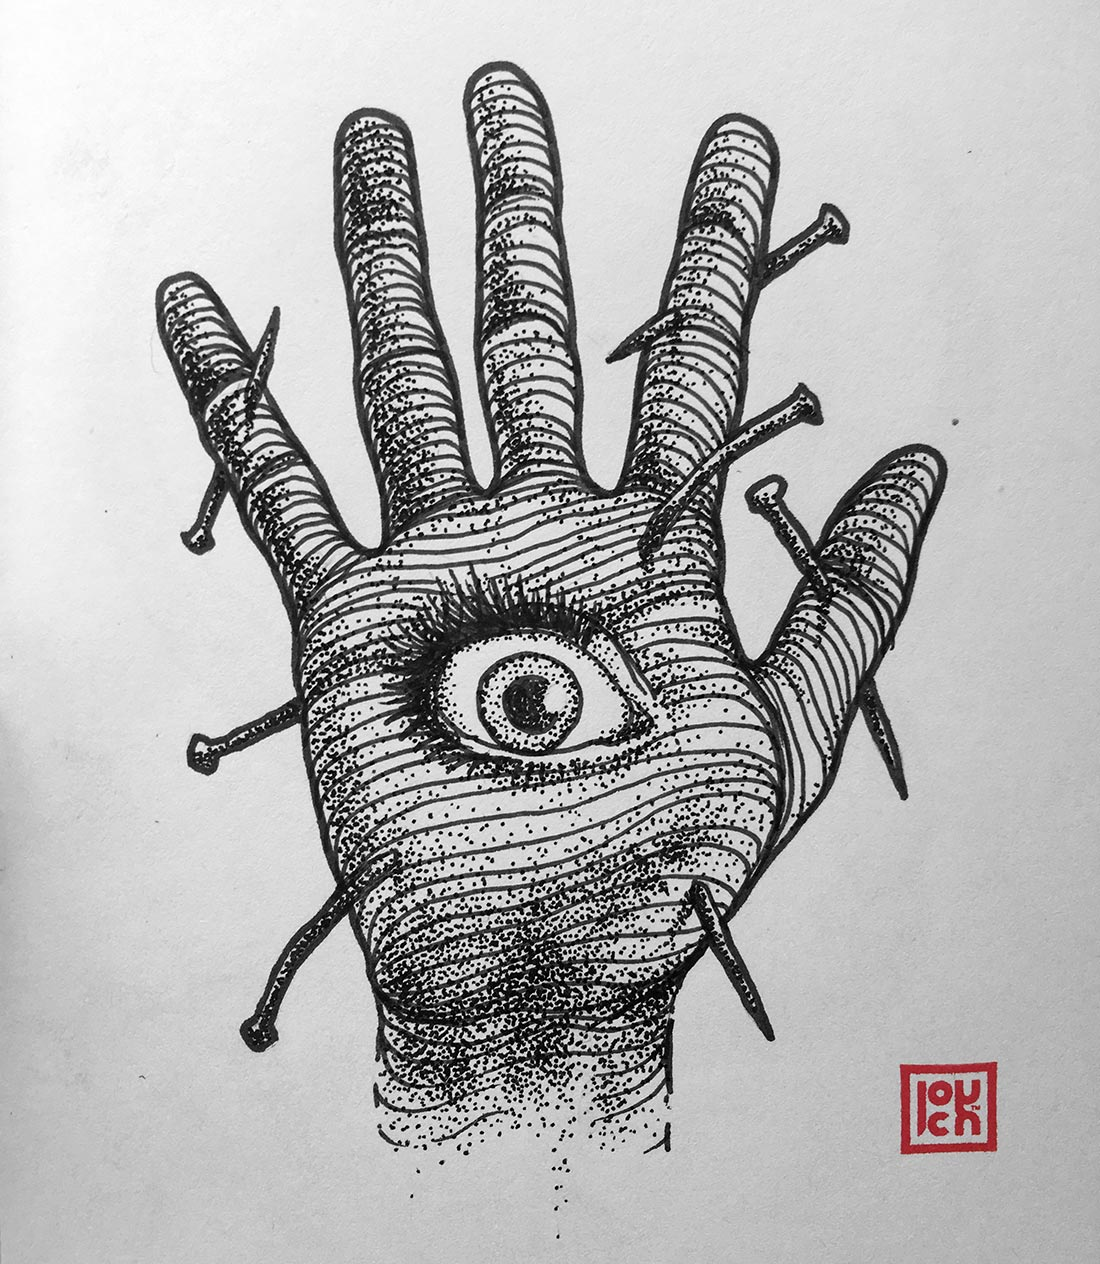 Illustration Tattoos: Nailed Eyed Hand